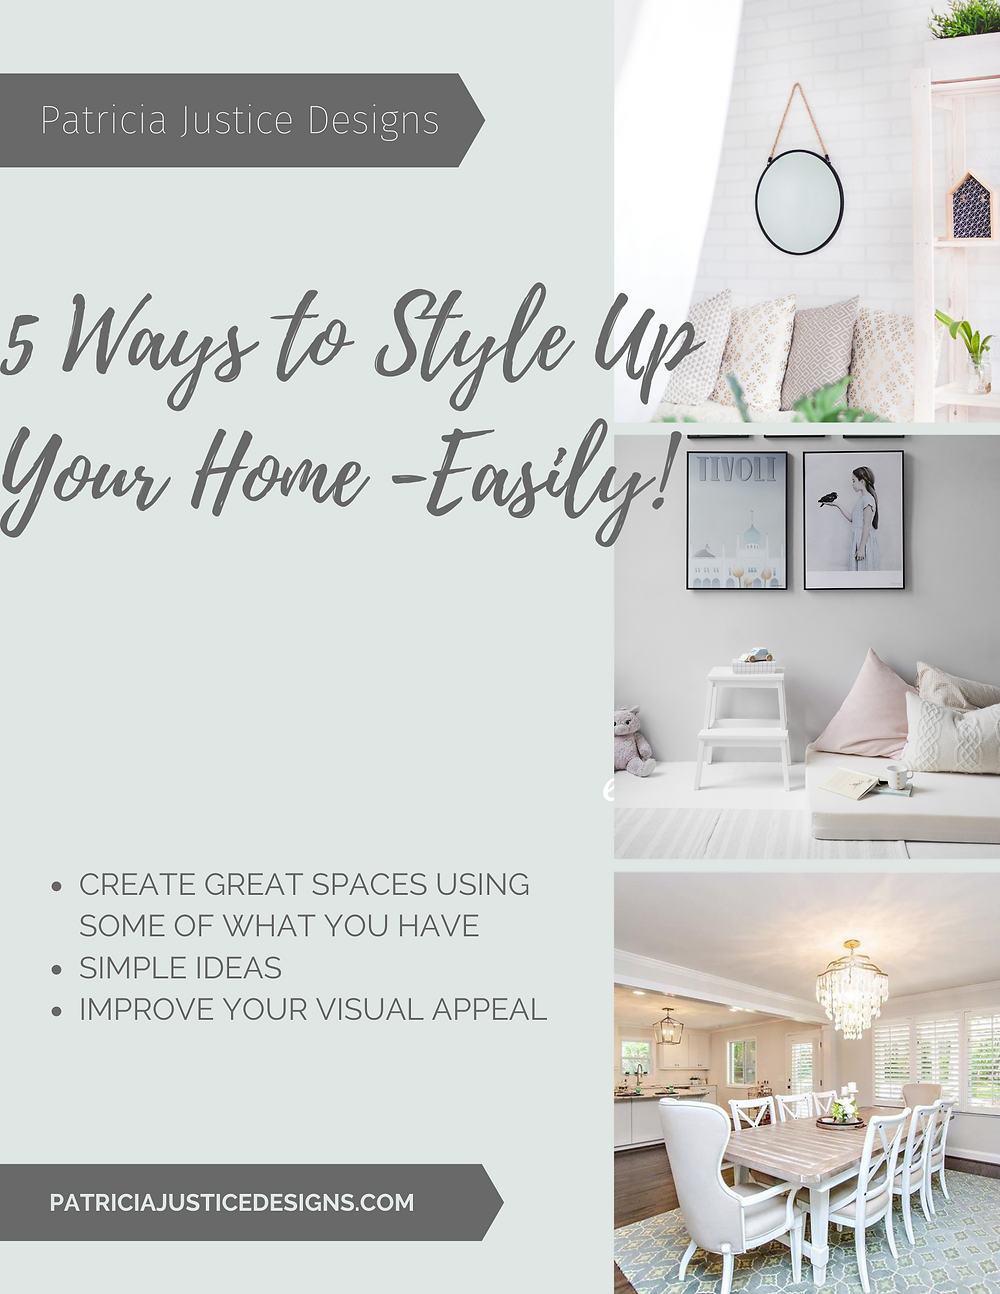 Free ebook, 5 Ways to Style Up Your Home - Easily